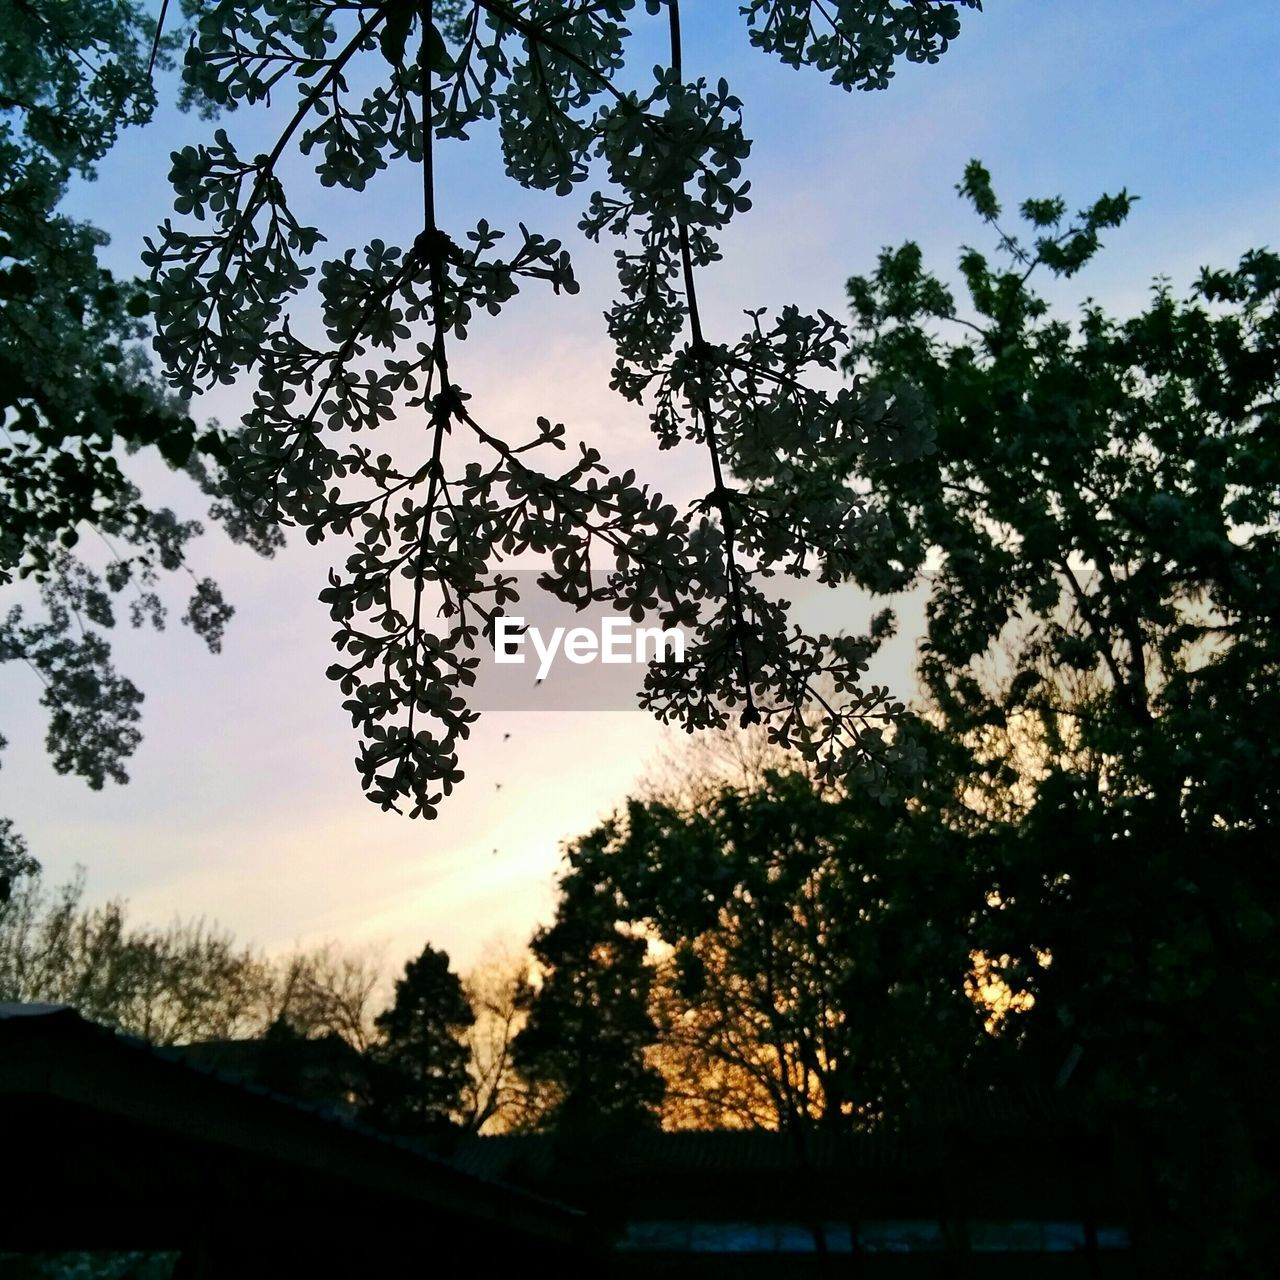 tree, low angle view, nature, sky, no people, silhouette, beauty in nature, growth, outdoors, sunset, day, branch, tranquility, scenics